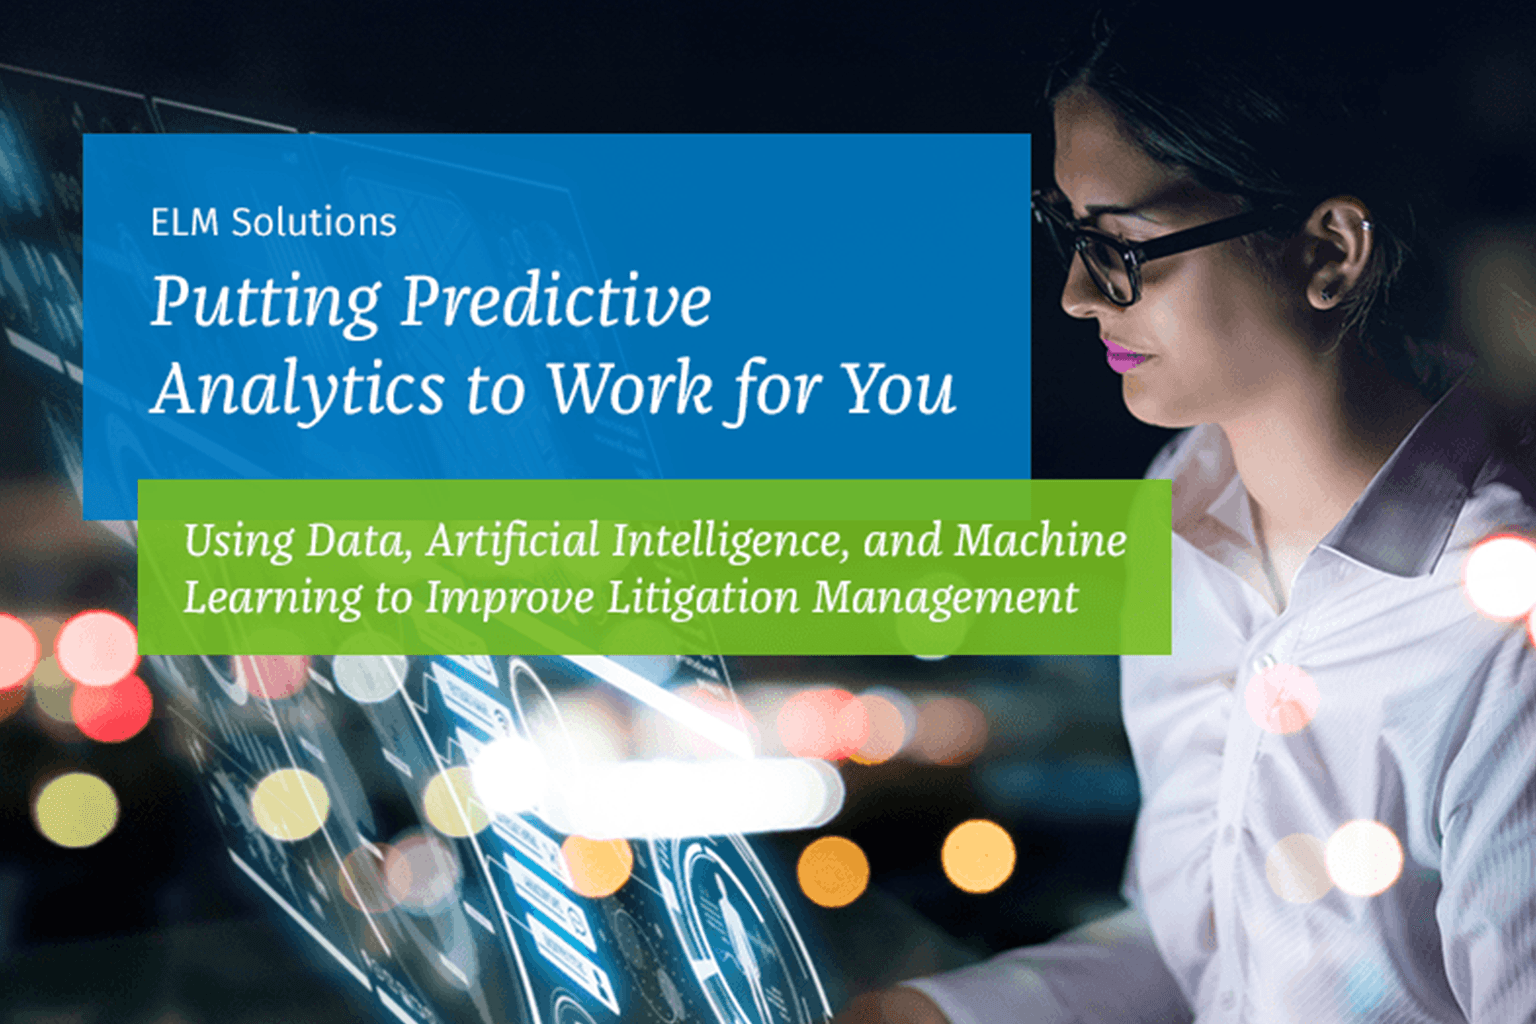 eBook: Putting Predictive Analytics to Work for You